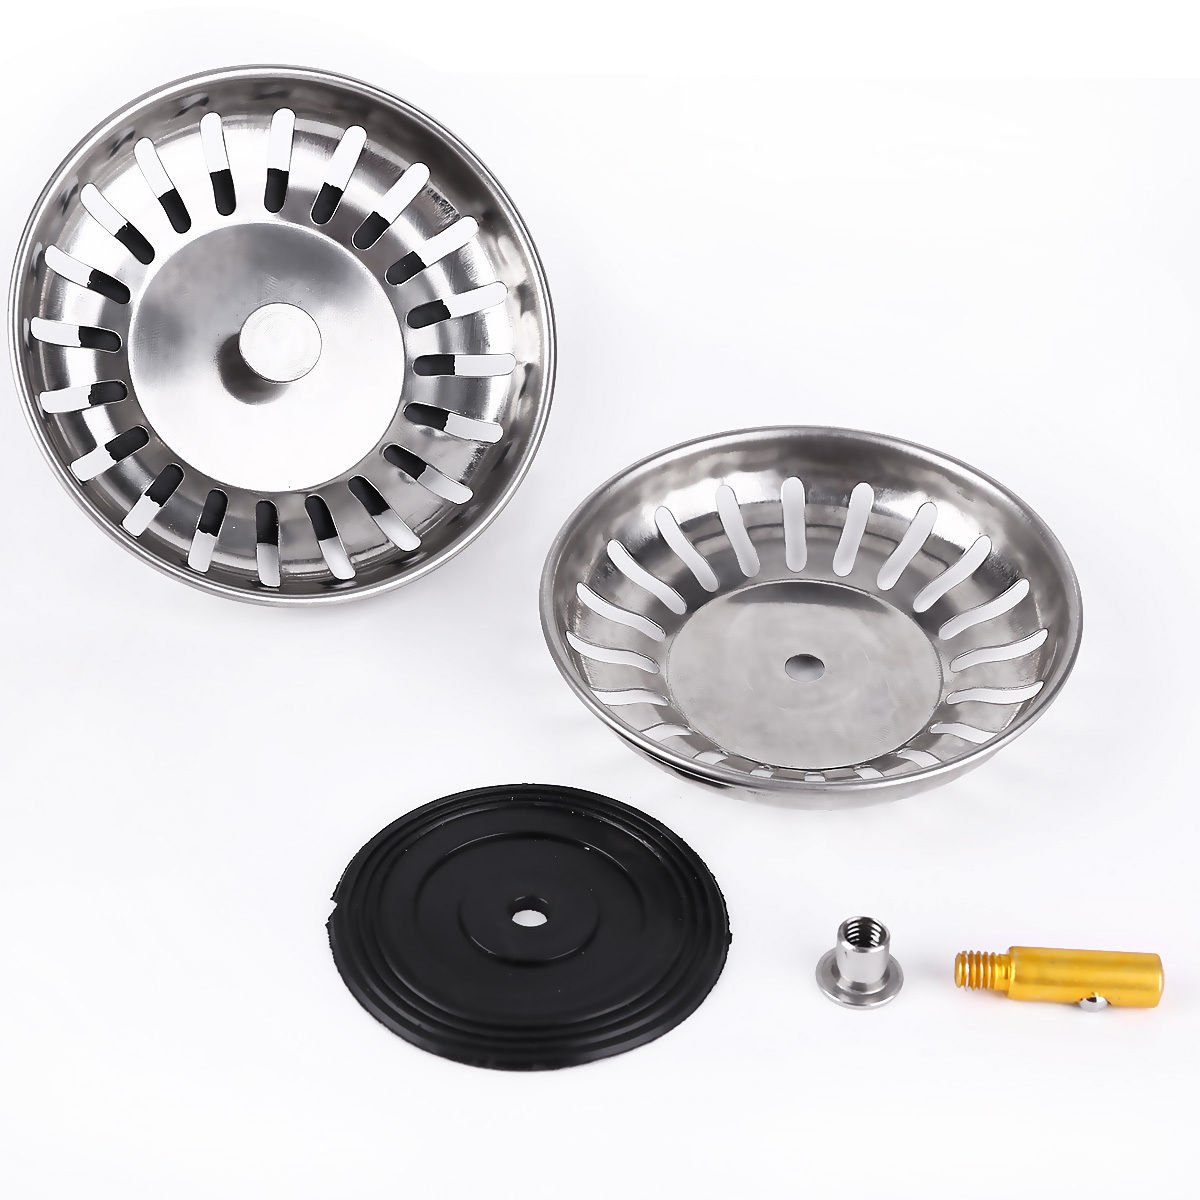 2Pcs 83mm326inch Stainless Steel Sink Strainers Kitchen